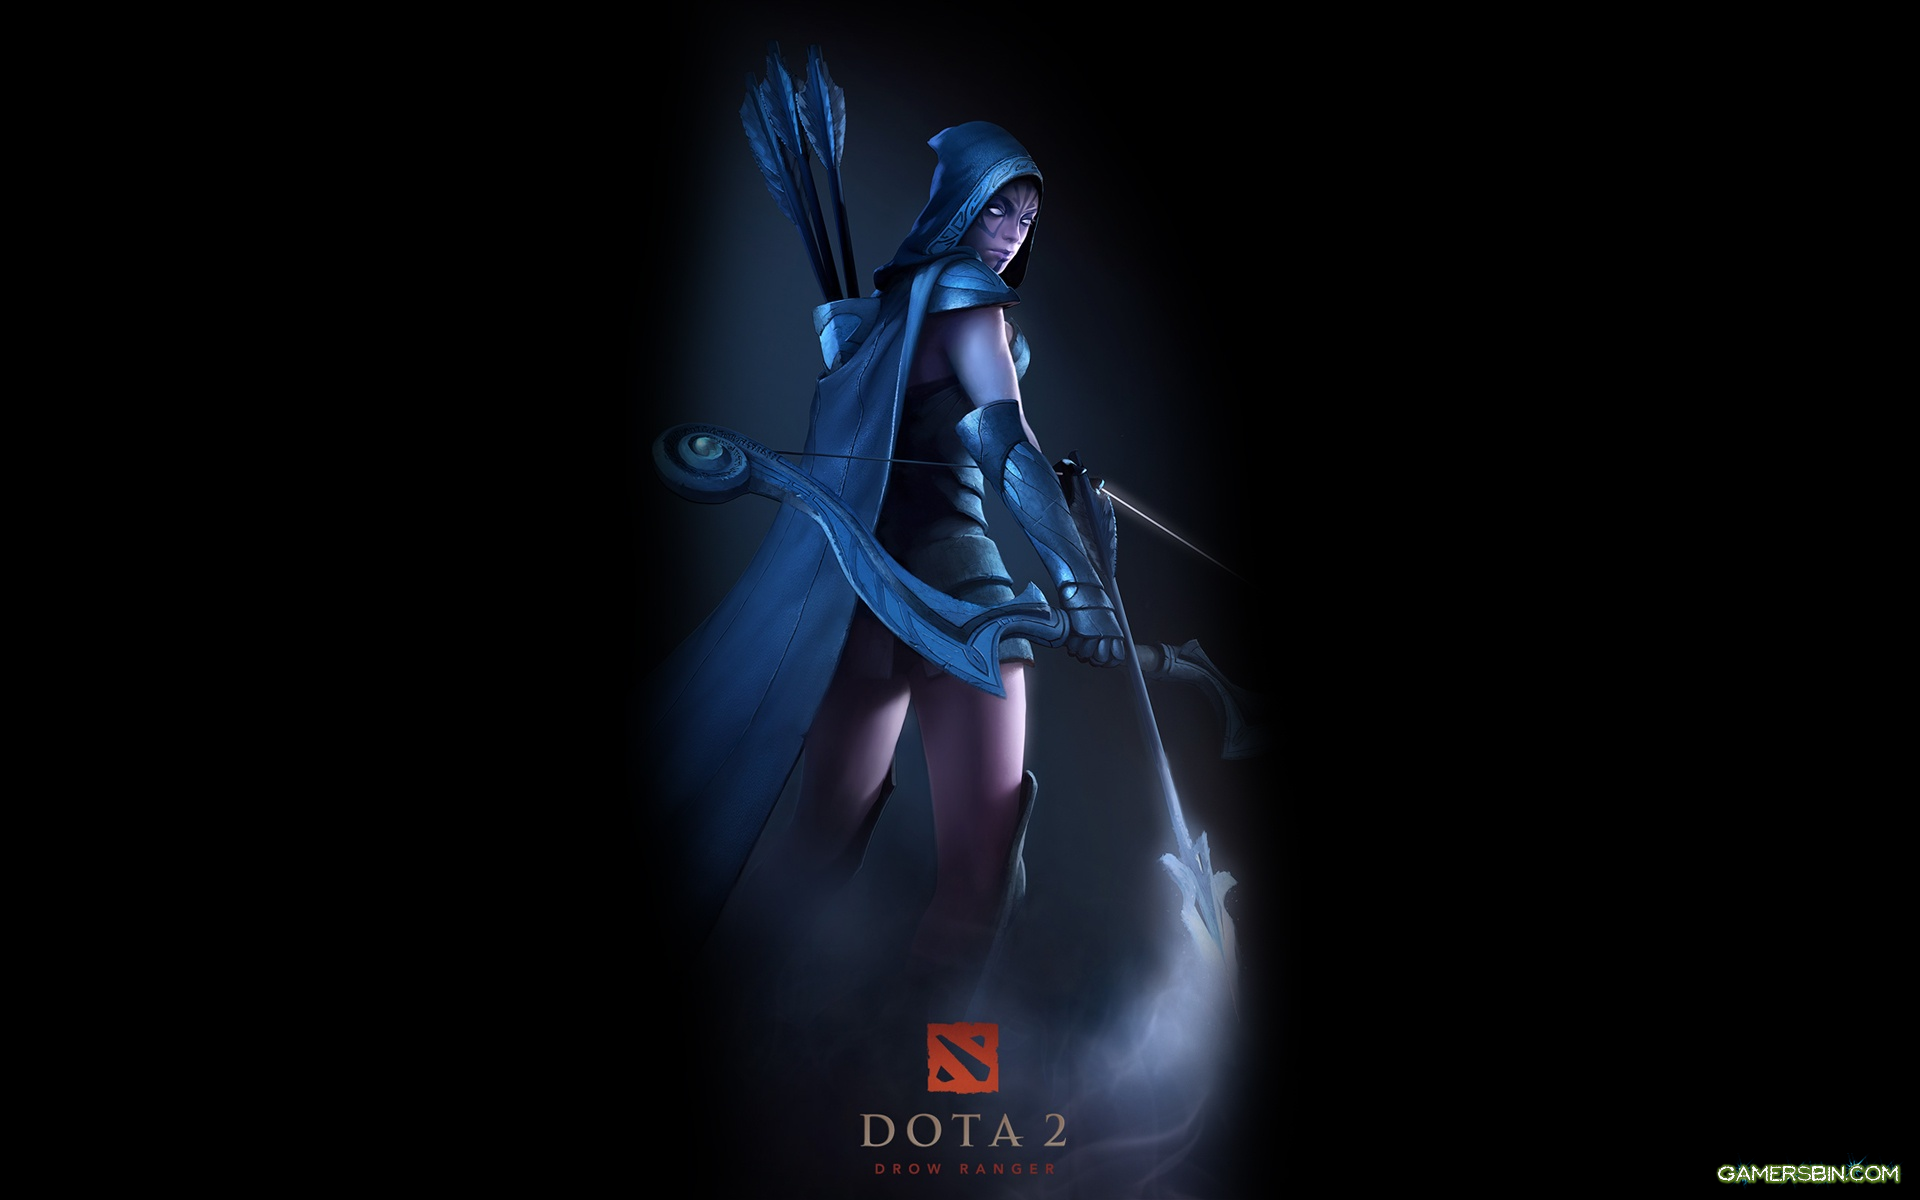 Dota2 wallpaper pc wallpapers gallery tactical gaming - Dota 2 Full Hd Desktop Is A Awesome Wallpapers Characters 2013